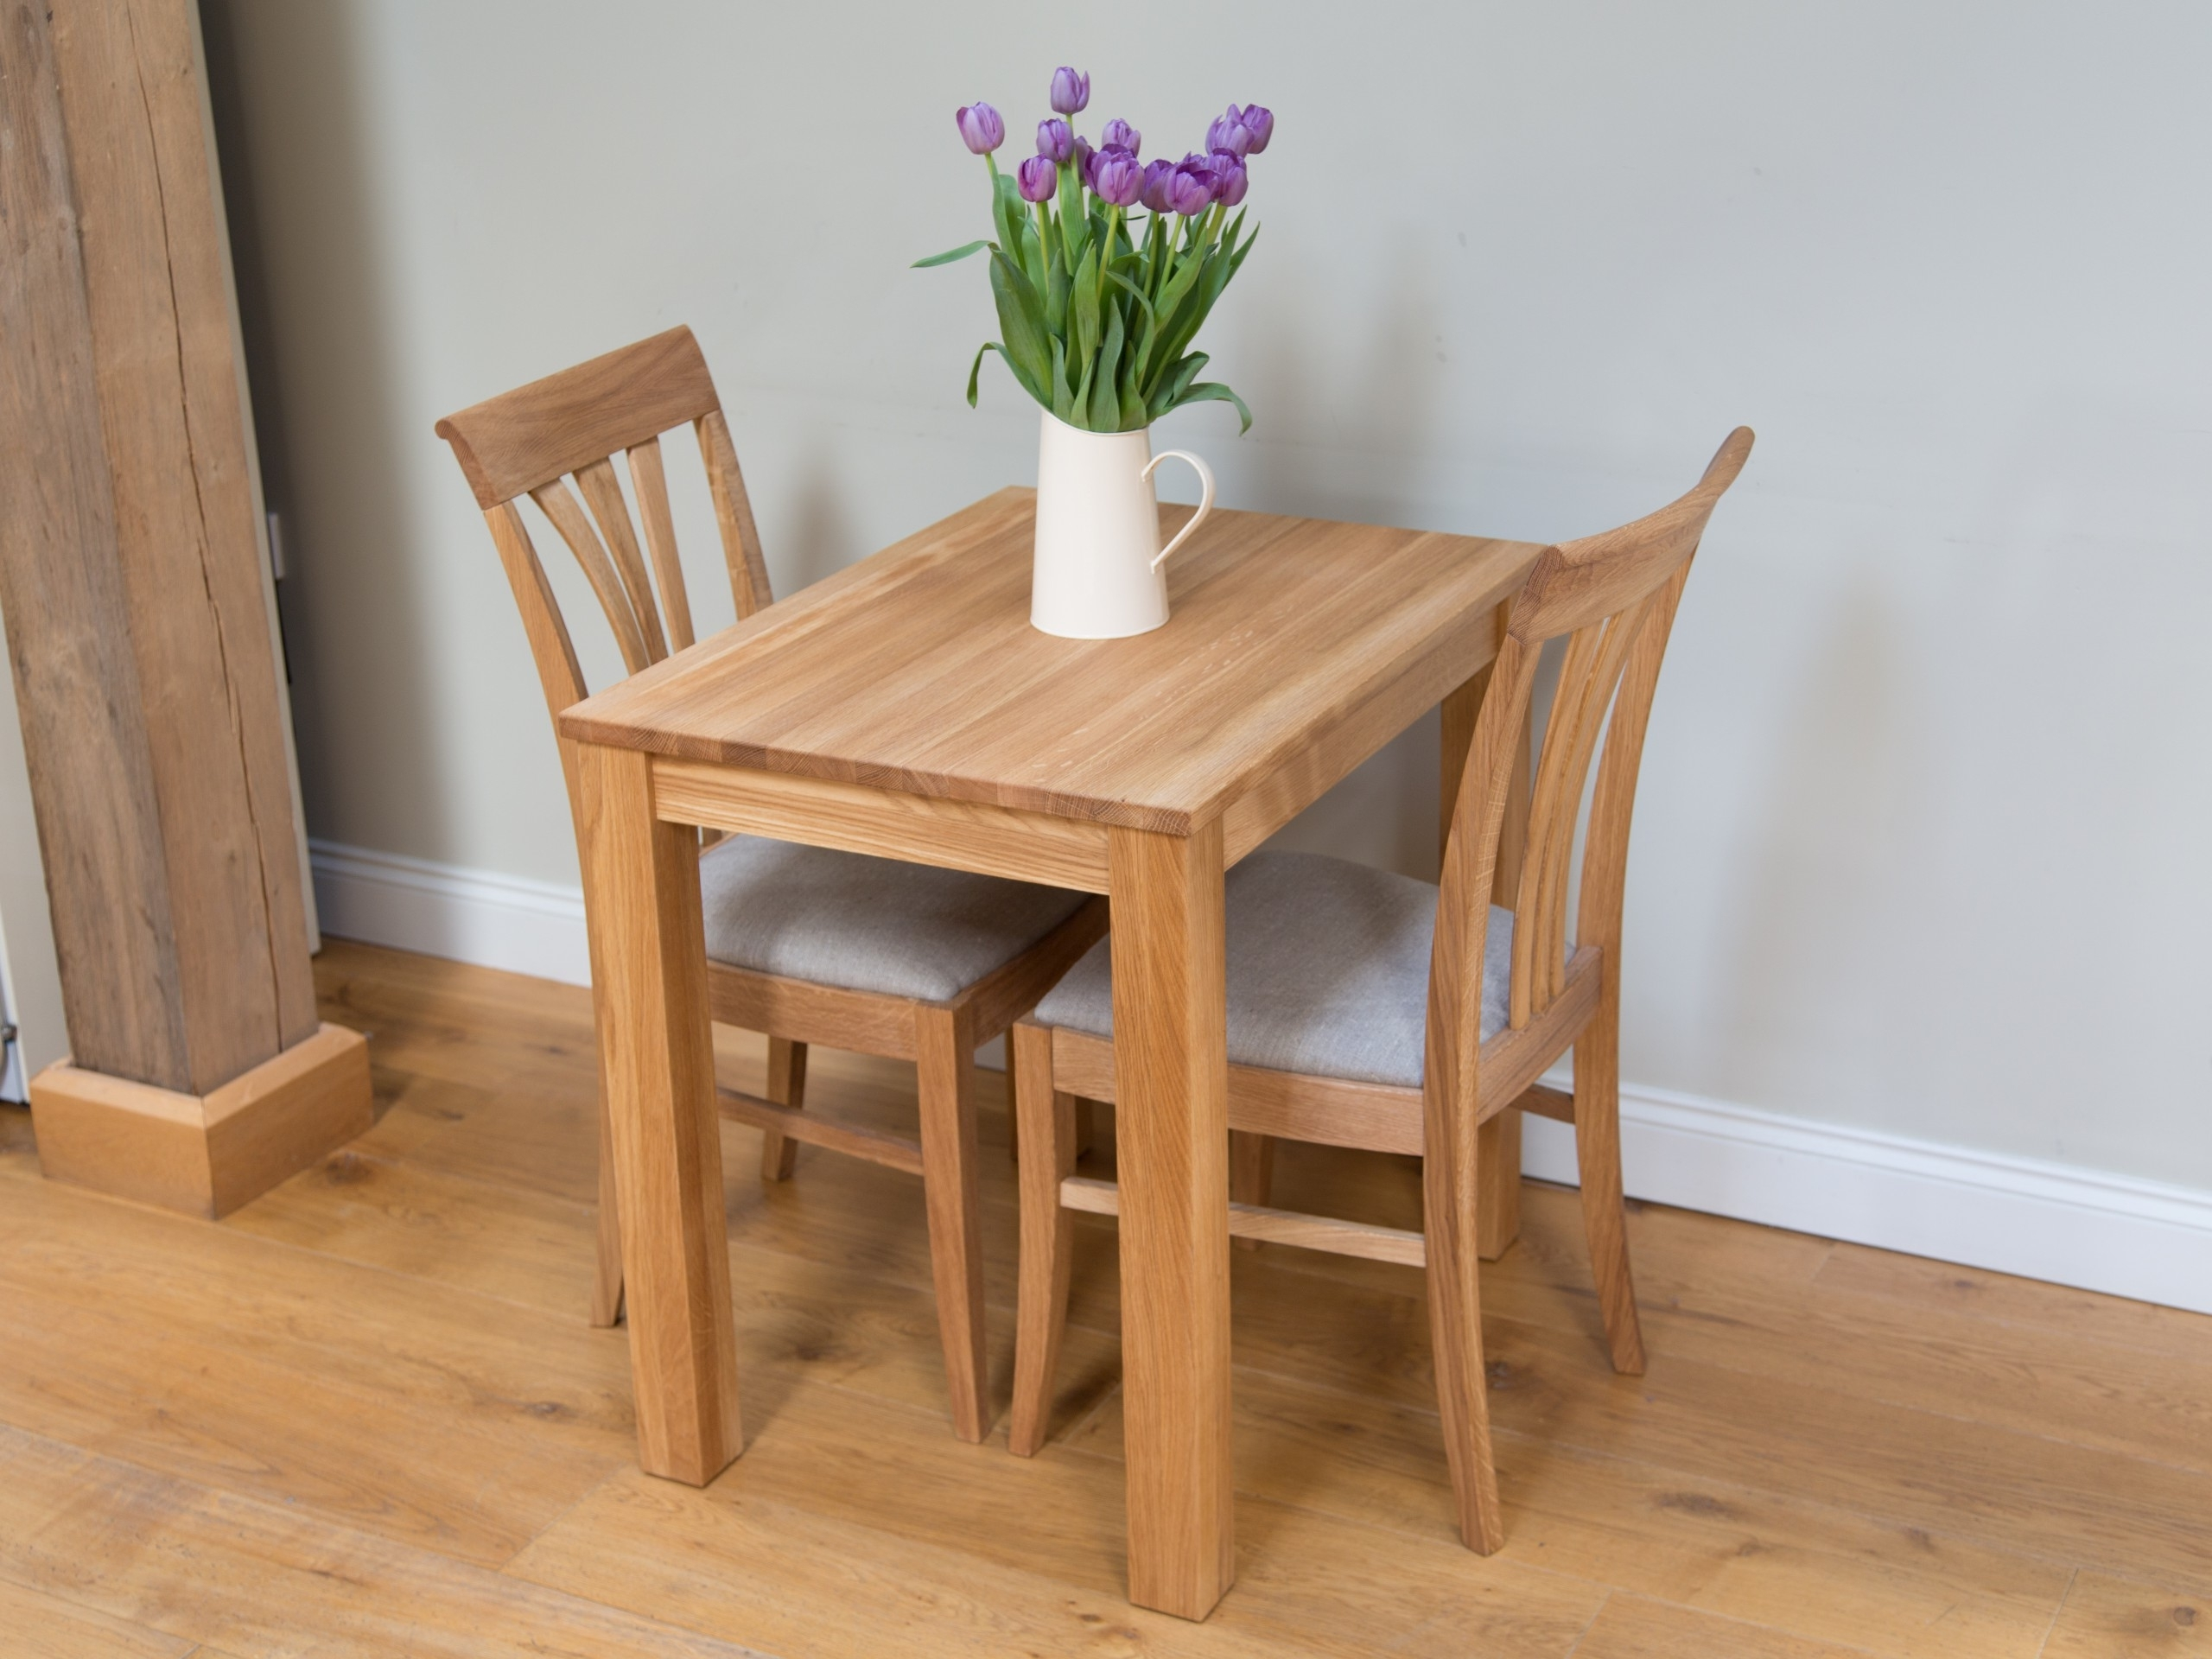 Preferred Oak Kitchen Table Chair Dining Set From Top Furniture, At A Table For Two Seat Dining Tables (View 6 of 25)